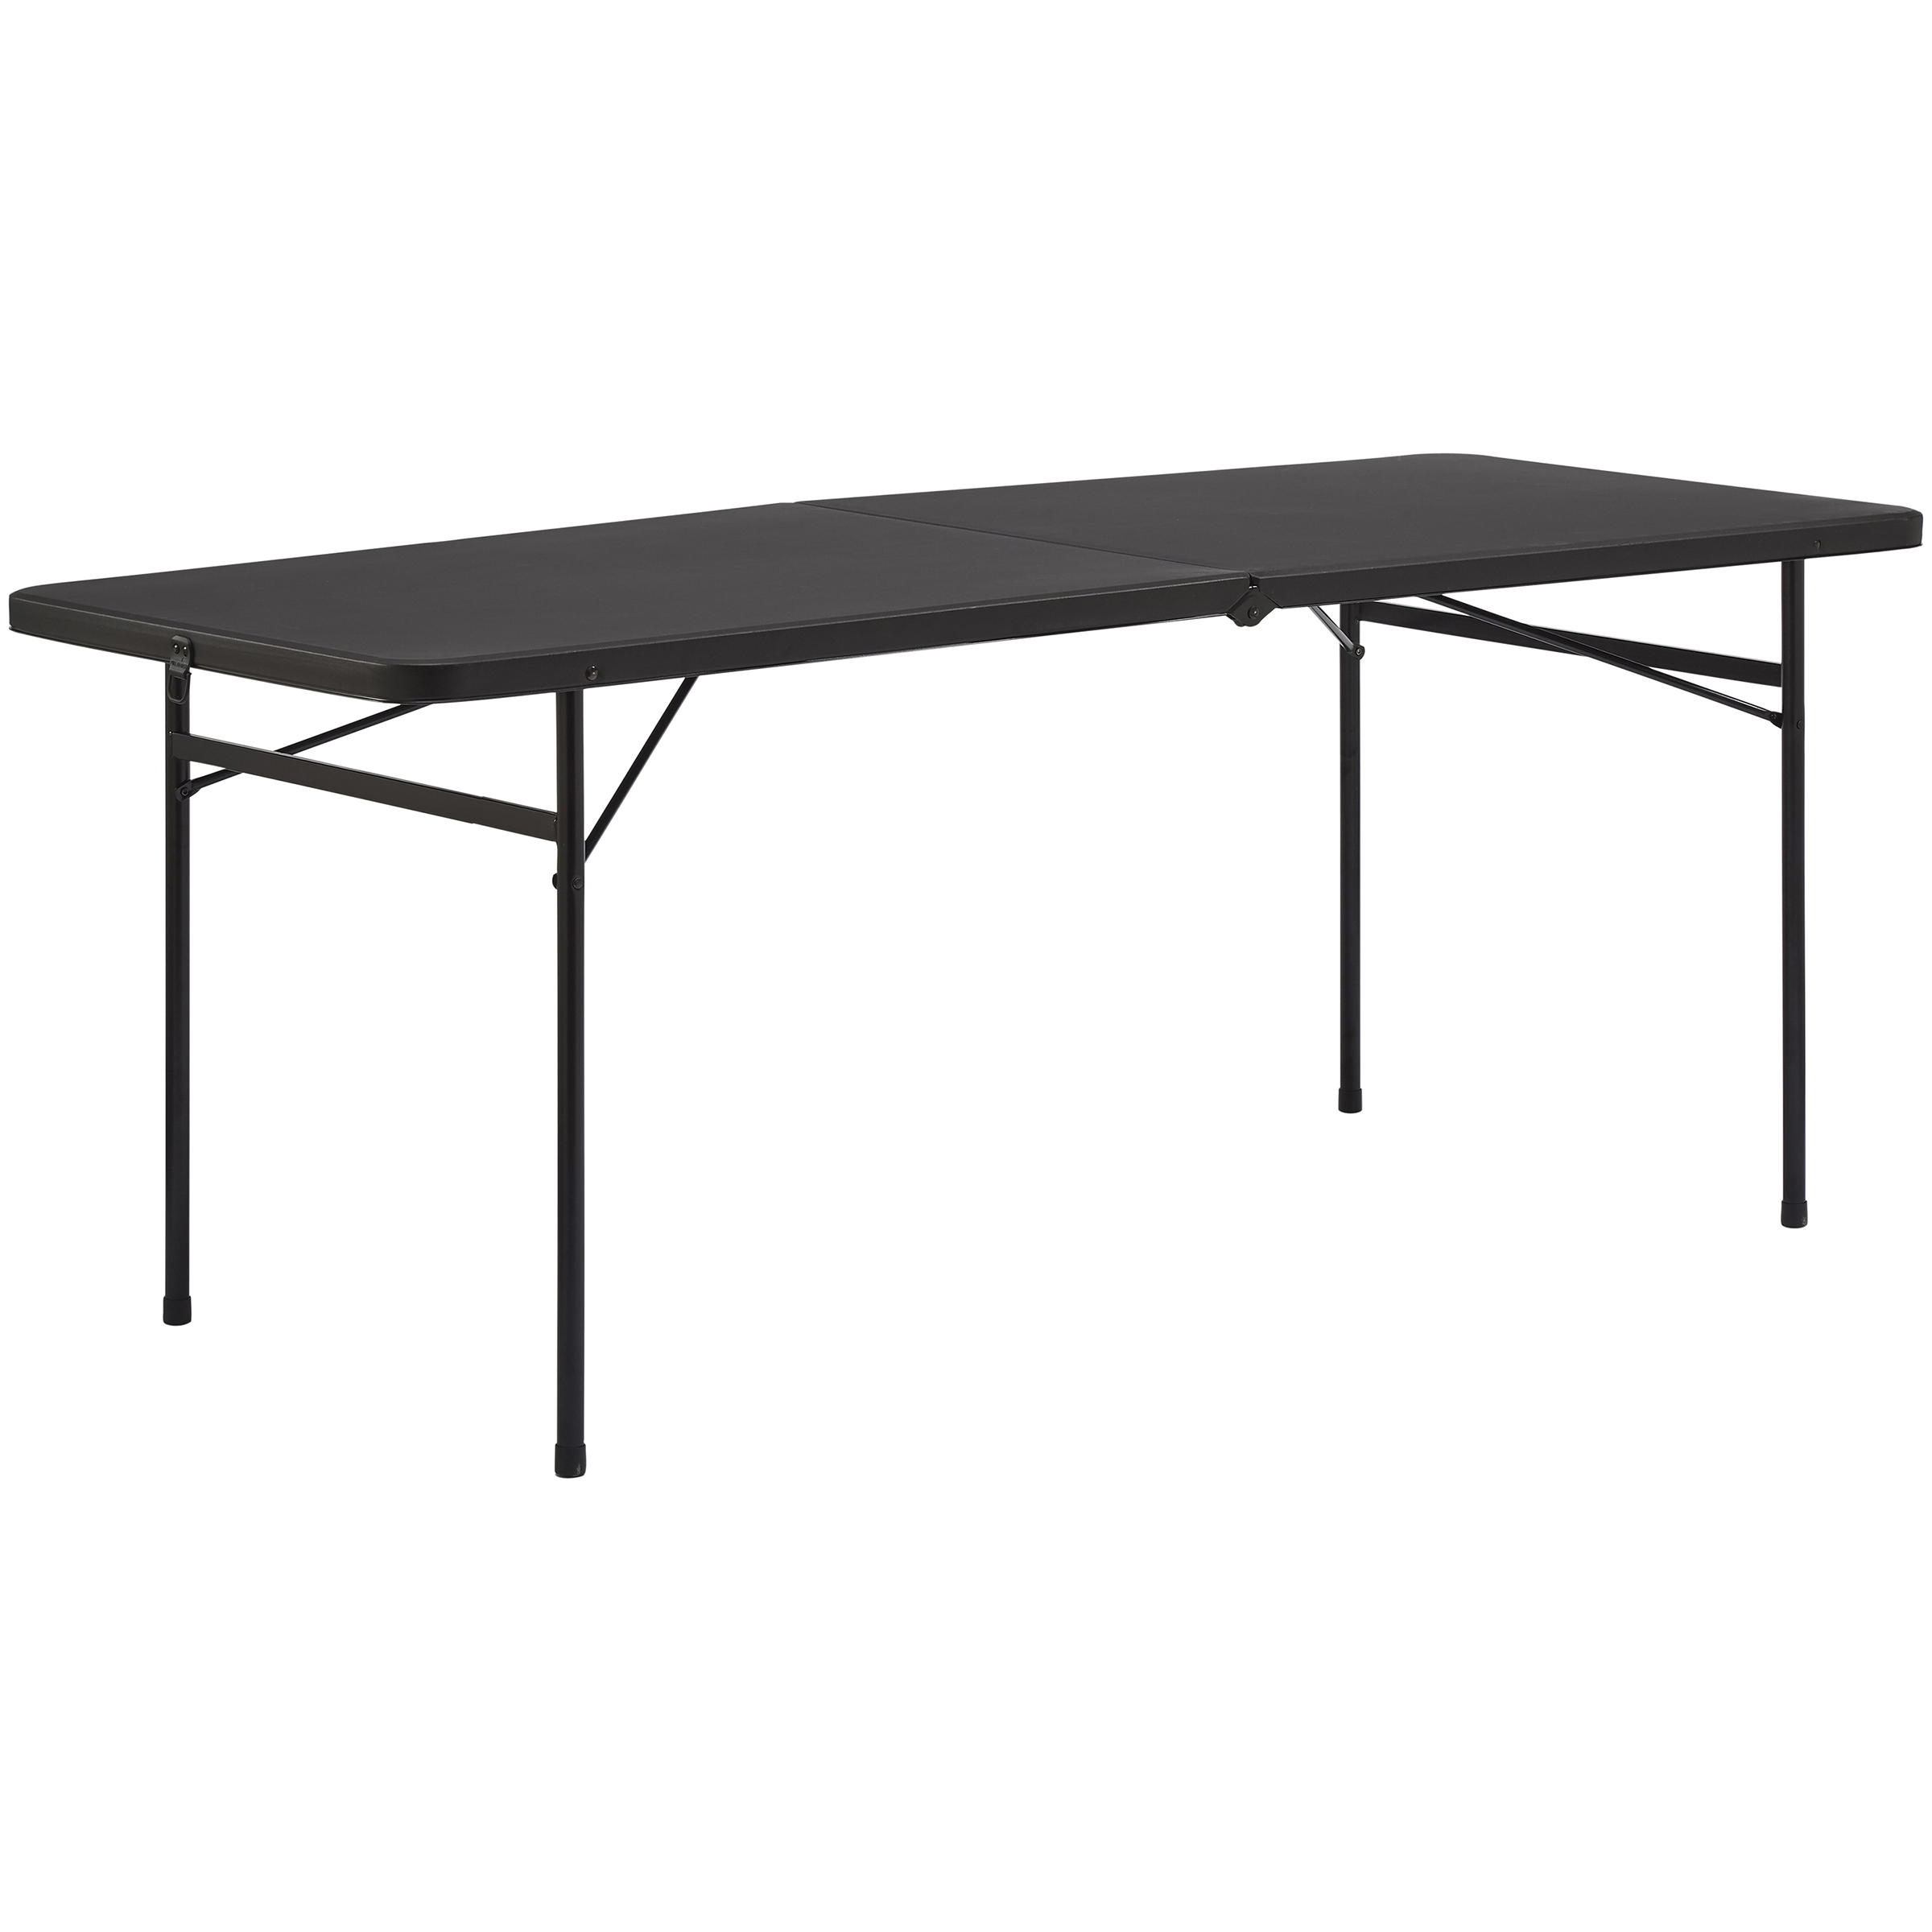 Mainstays 6u0027 Fold In Half Tailgate Table, Multiple Colors